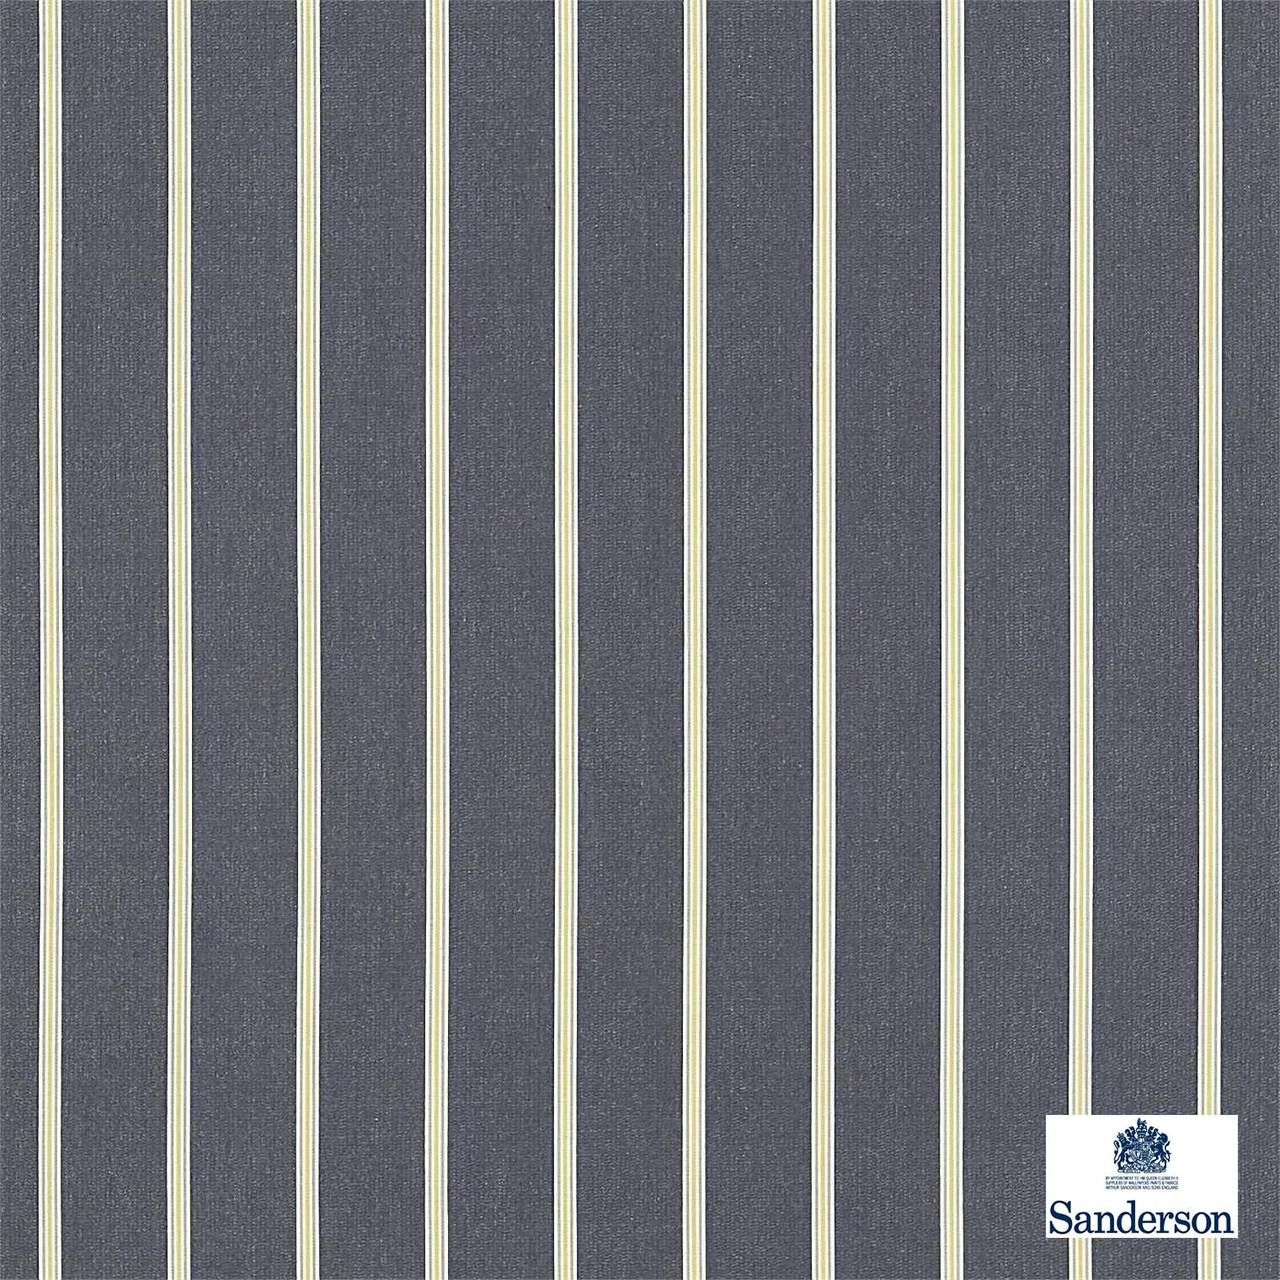 Sanderson Annis 232650    Upholstery Fabric - Black - Charcoal, Fibre Blends, Stripe, Traditional, Commercial Use, Domestic Use, Standard Width